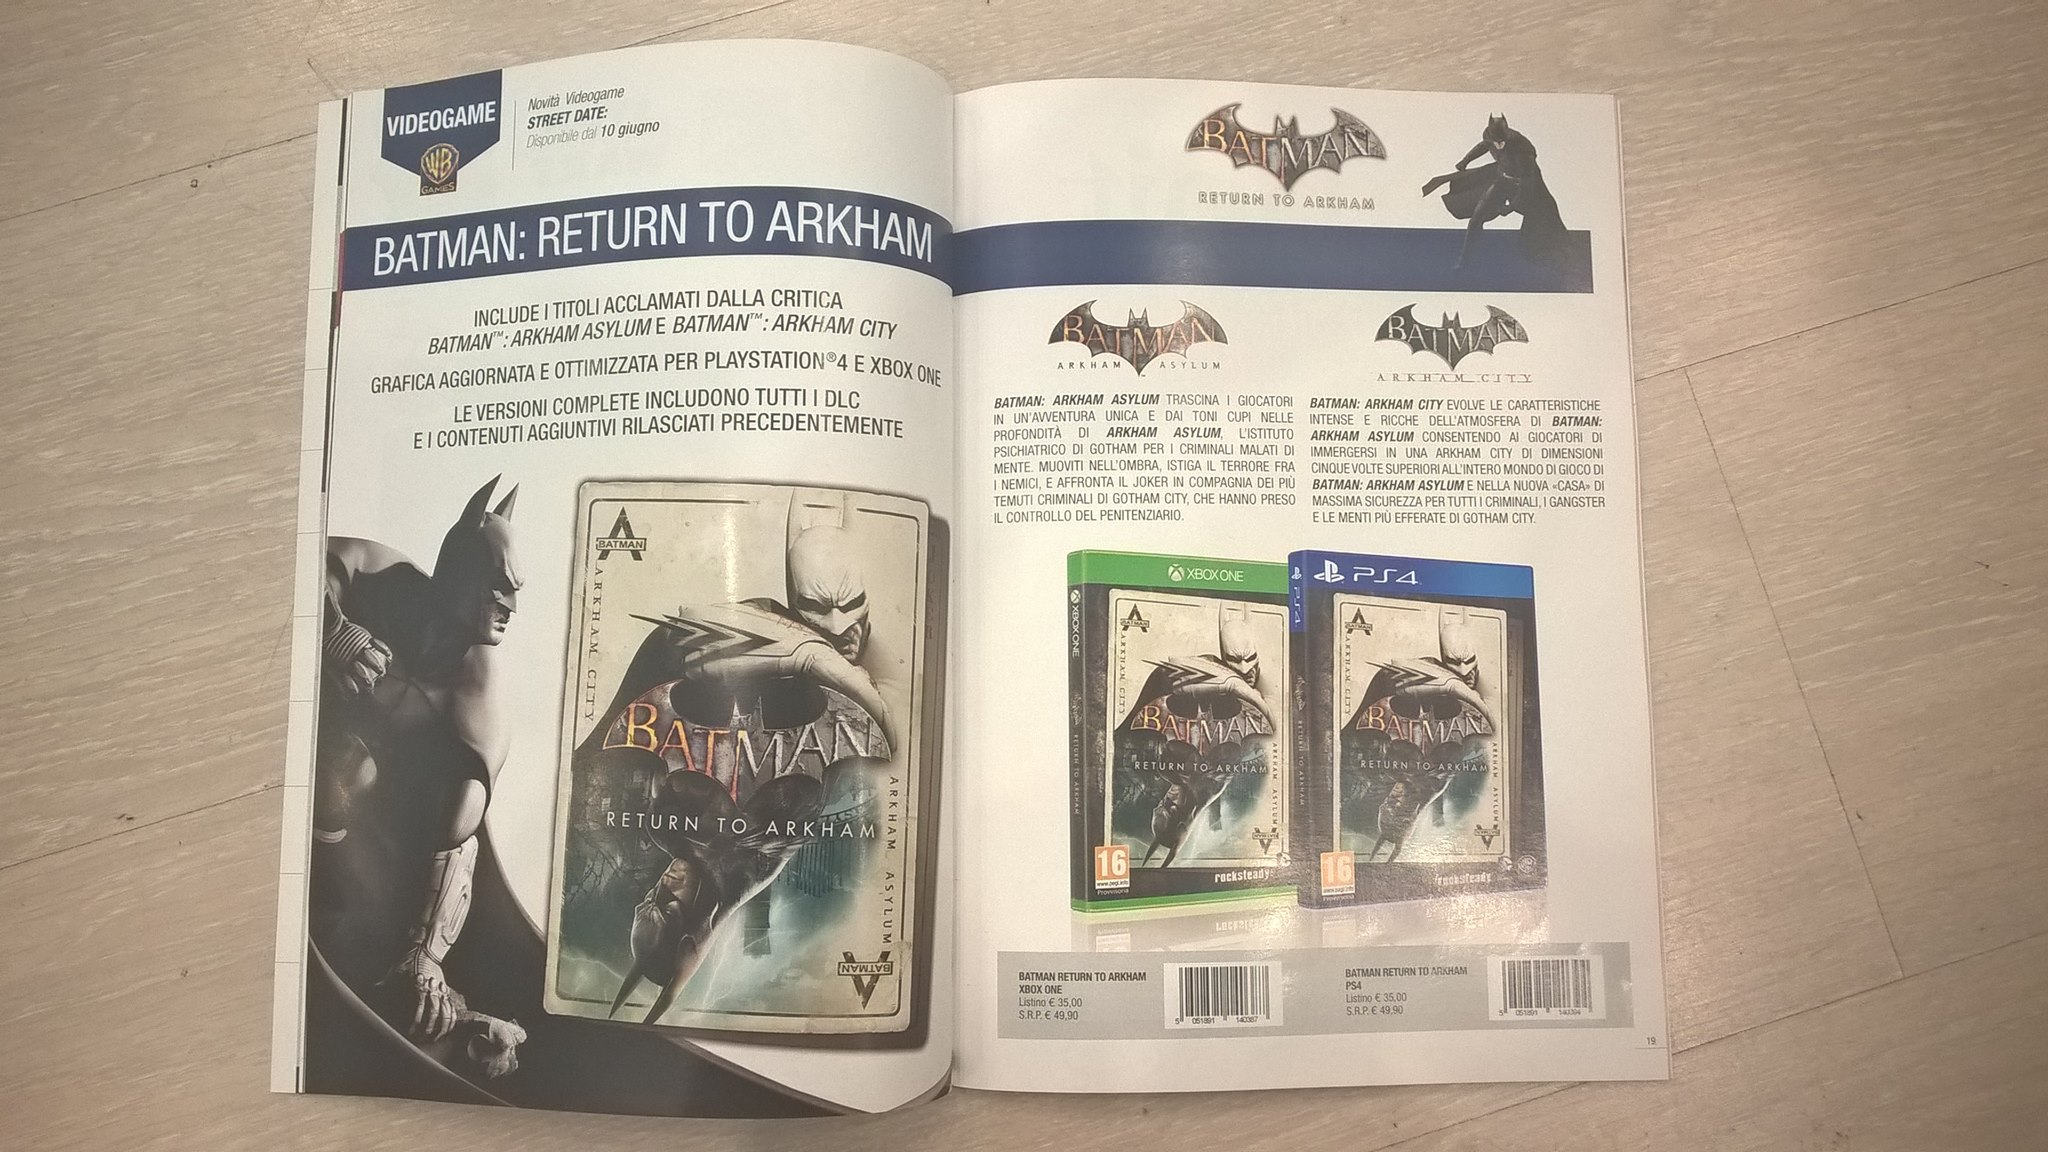 Batman Return to Arkham Italian magazine image